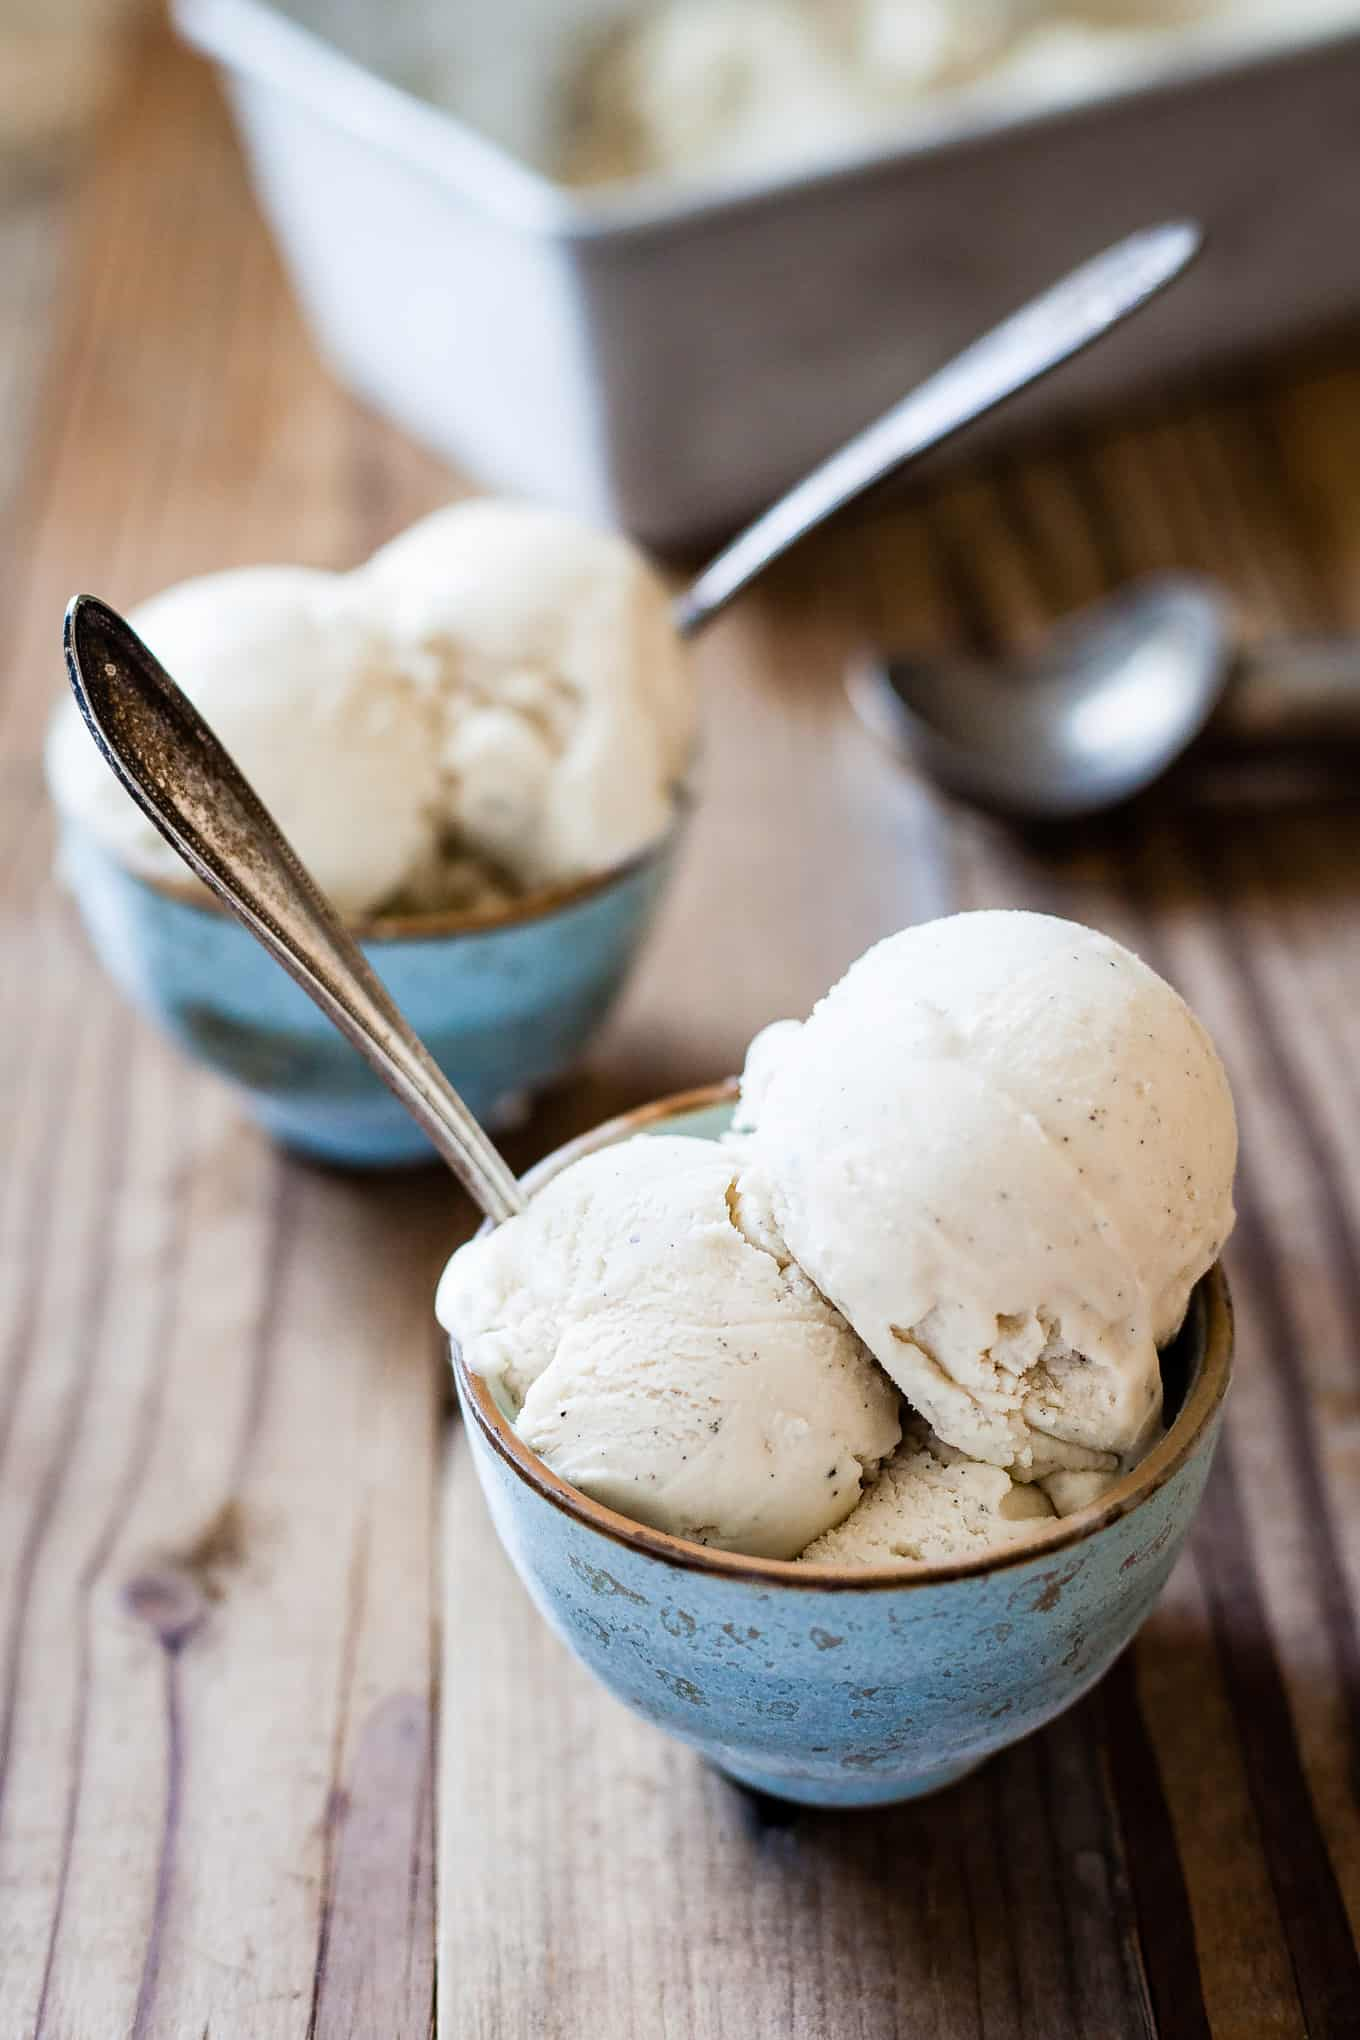 Vegan Vanilla Bean Ice Cream Recipe